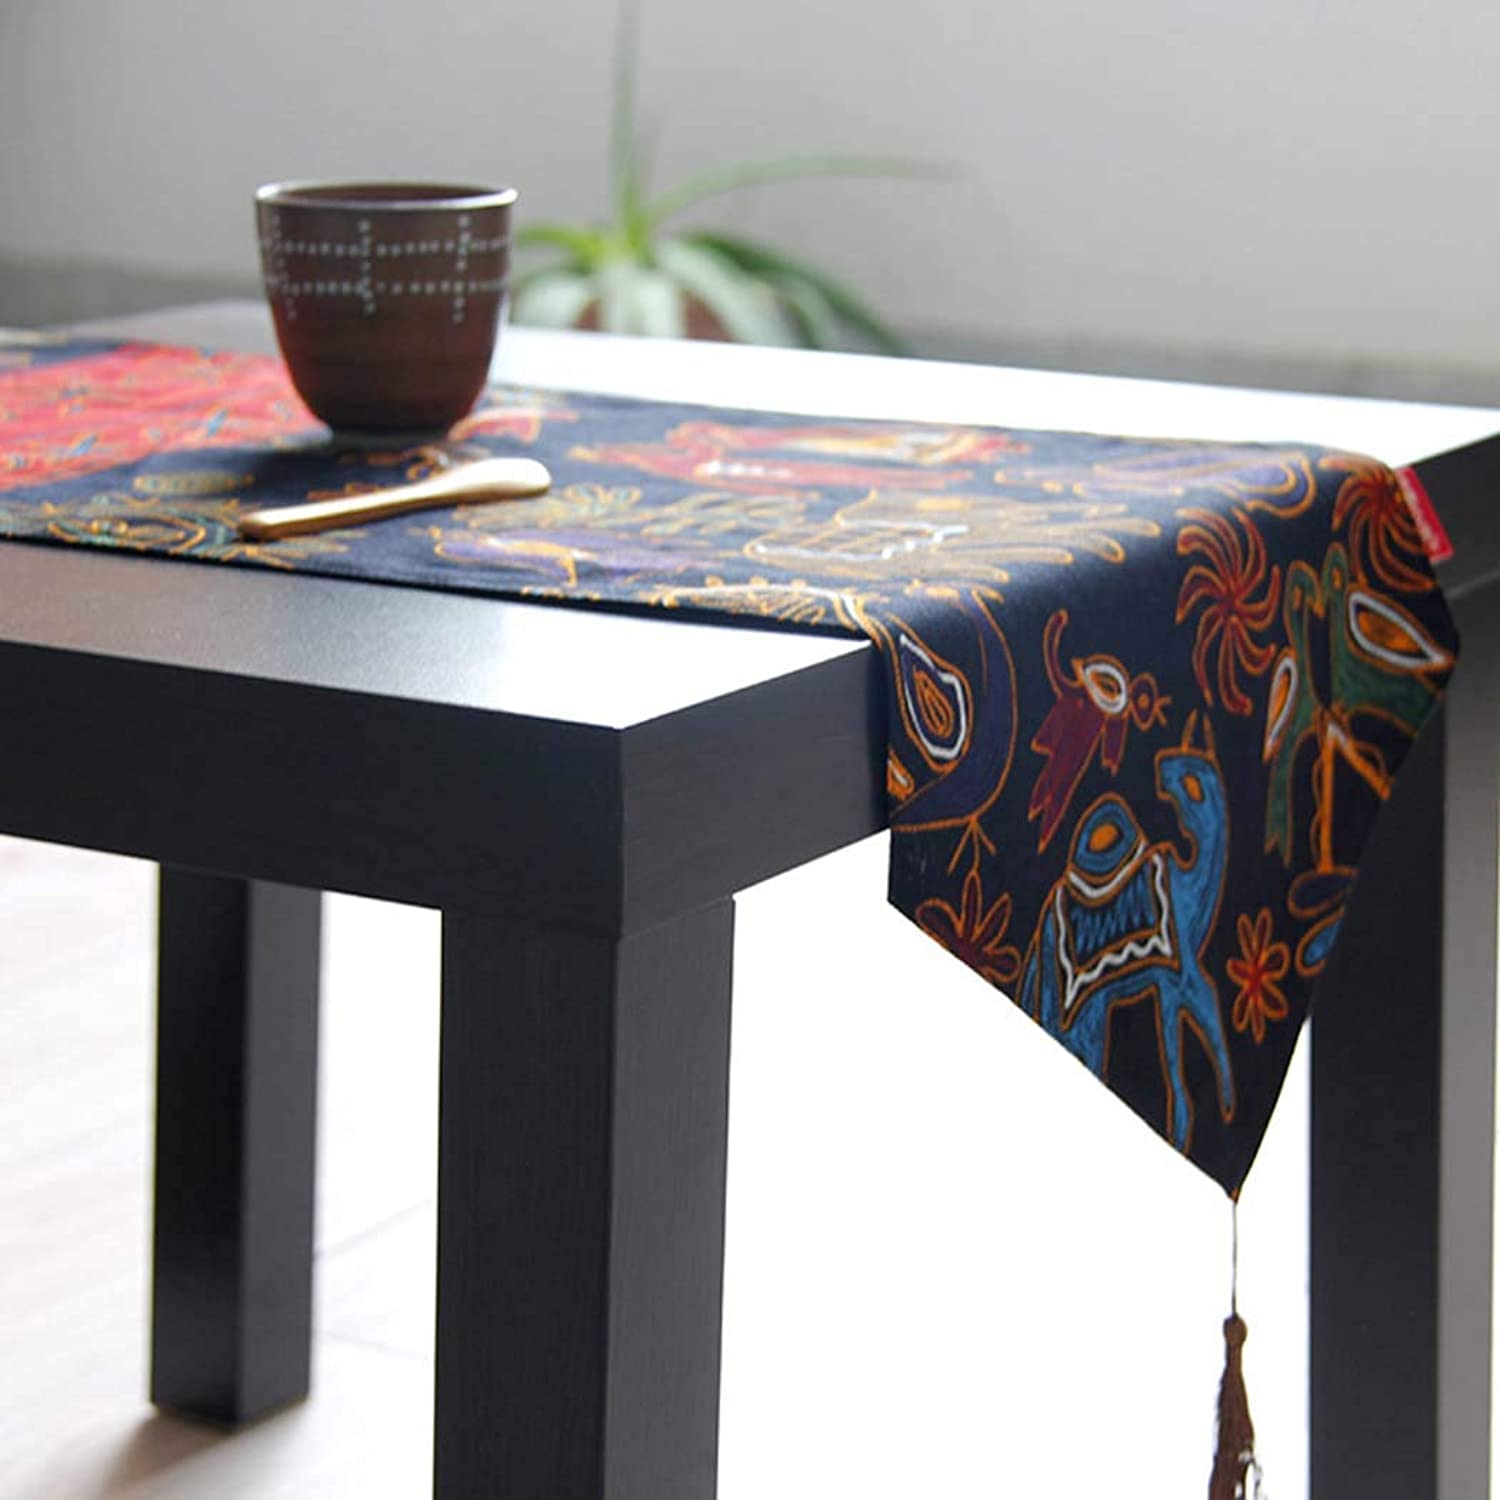 Cotton and Linen Table Runner Ideal for Coffee Table Runner DiningTable Runner or Kitchen Table Runner,bluee,30  160cm